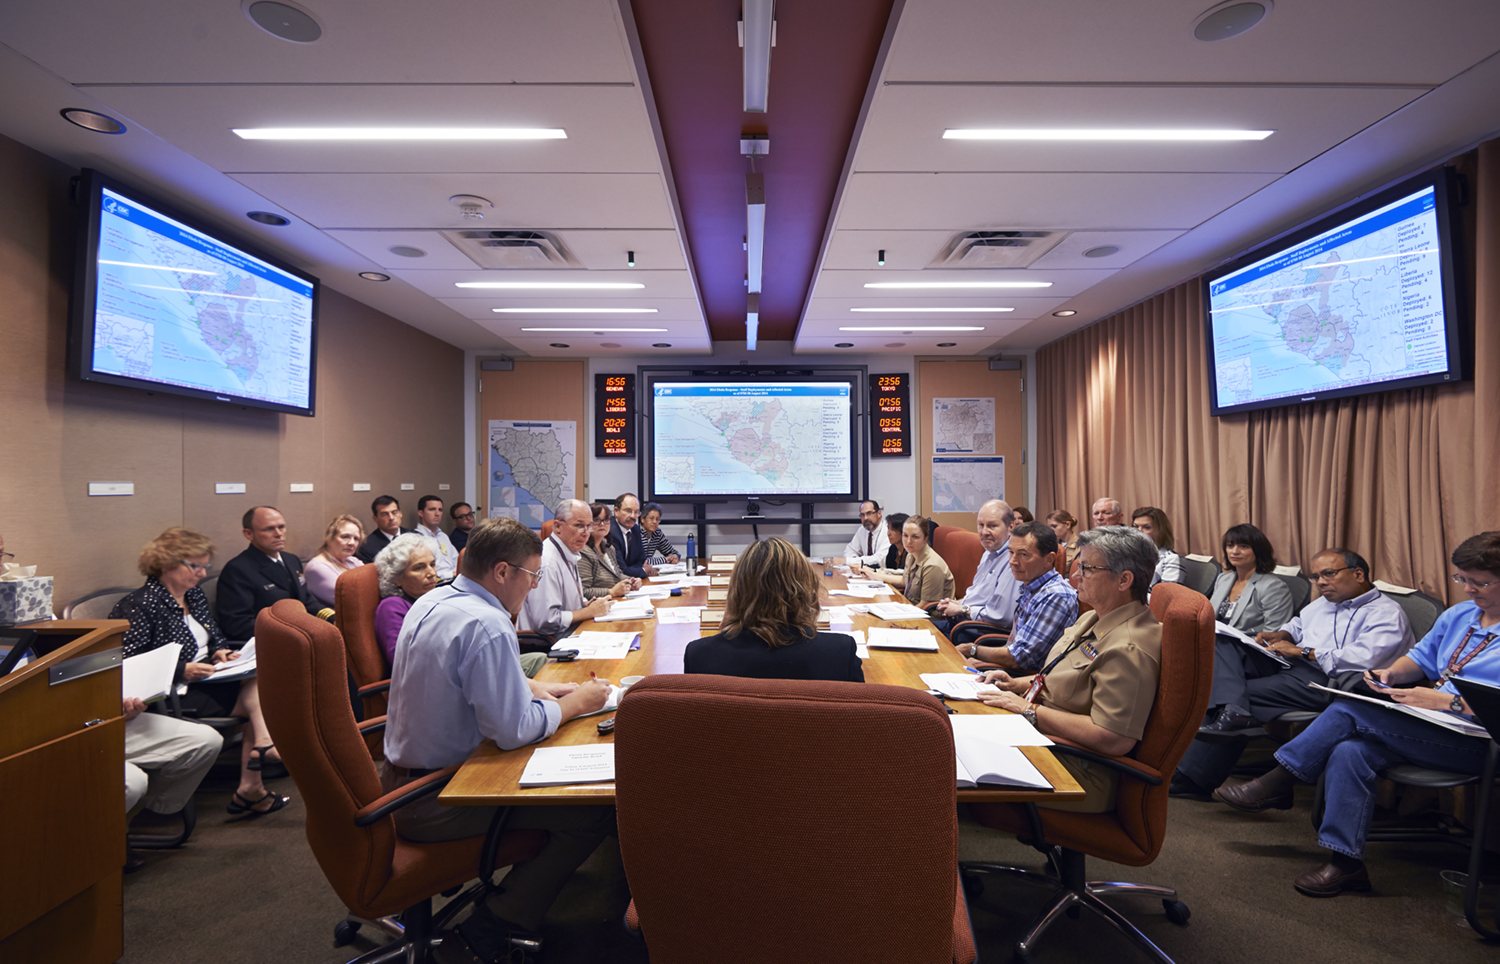 CDC leaders integral to the Ebola response, including epidemiologists, laboratorians, logistics, and more, assemble in agency's command center to discuss next steps in directing the response at CDC Emergency operations center in Atlanta, August 8.